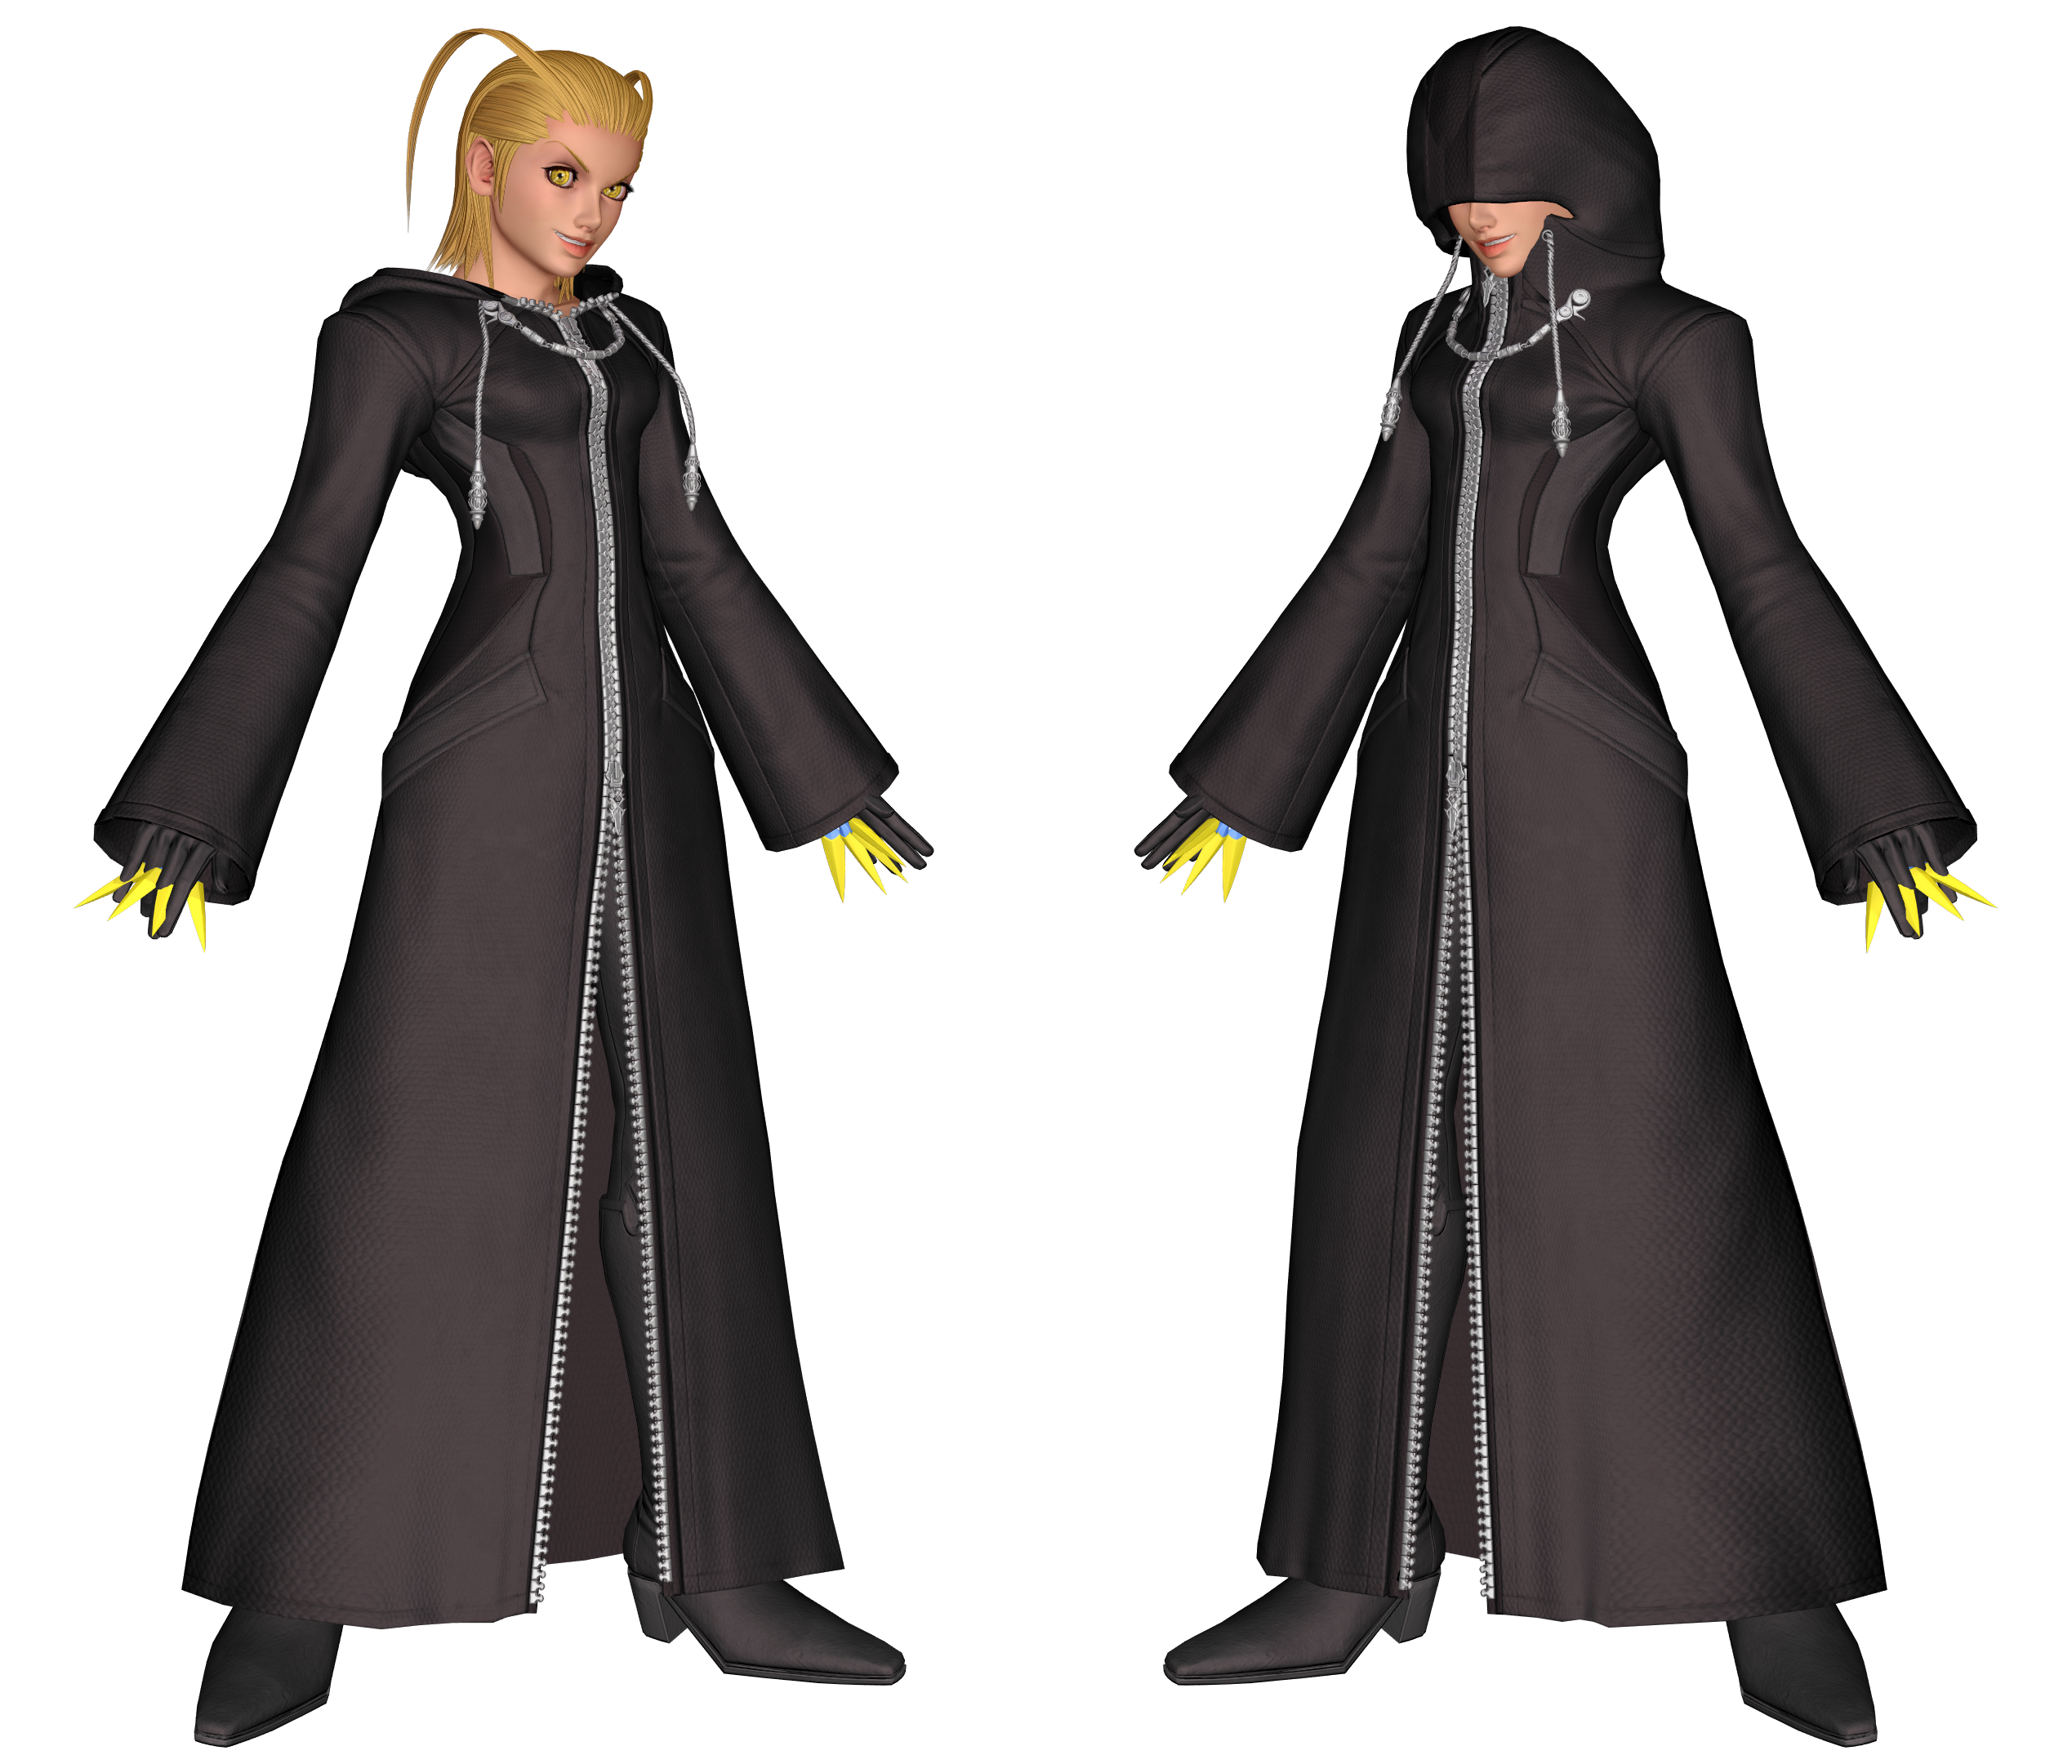 Mmd Kh3 Larxene Dl By Danizaya On Deviantart This was an experiment in coloring for me! mmd kh3 larxene dl by danizaya on